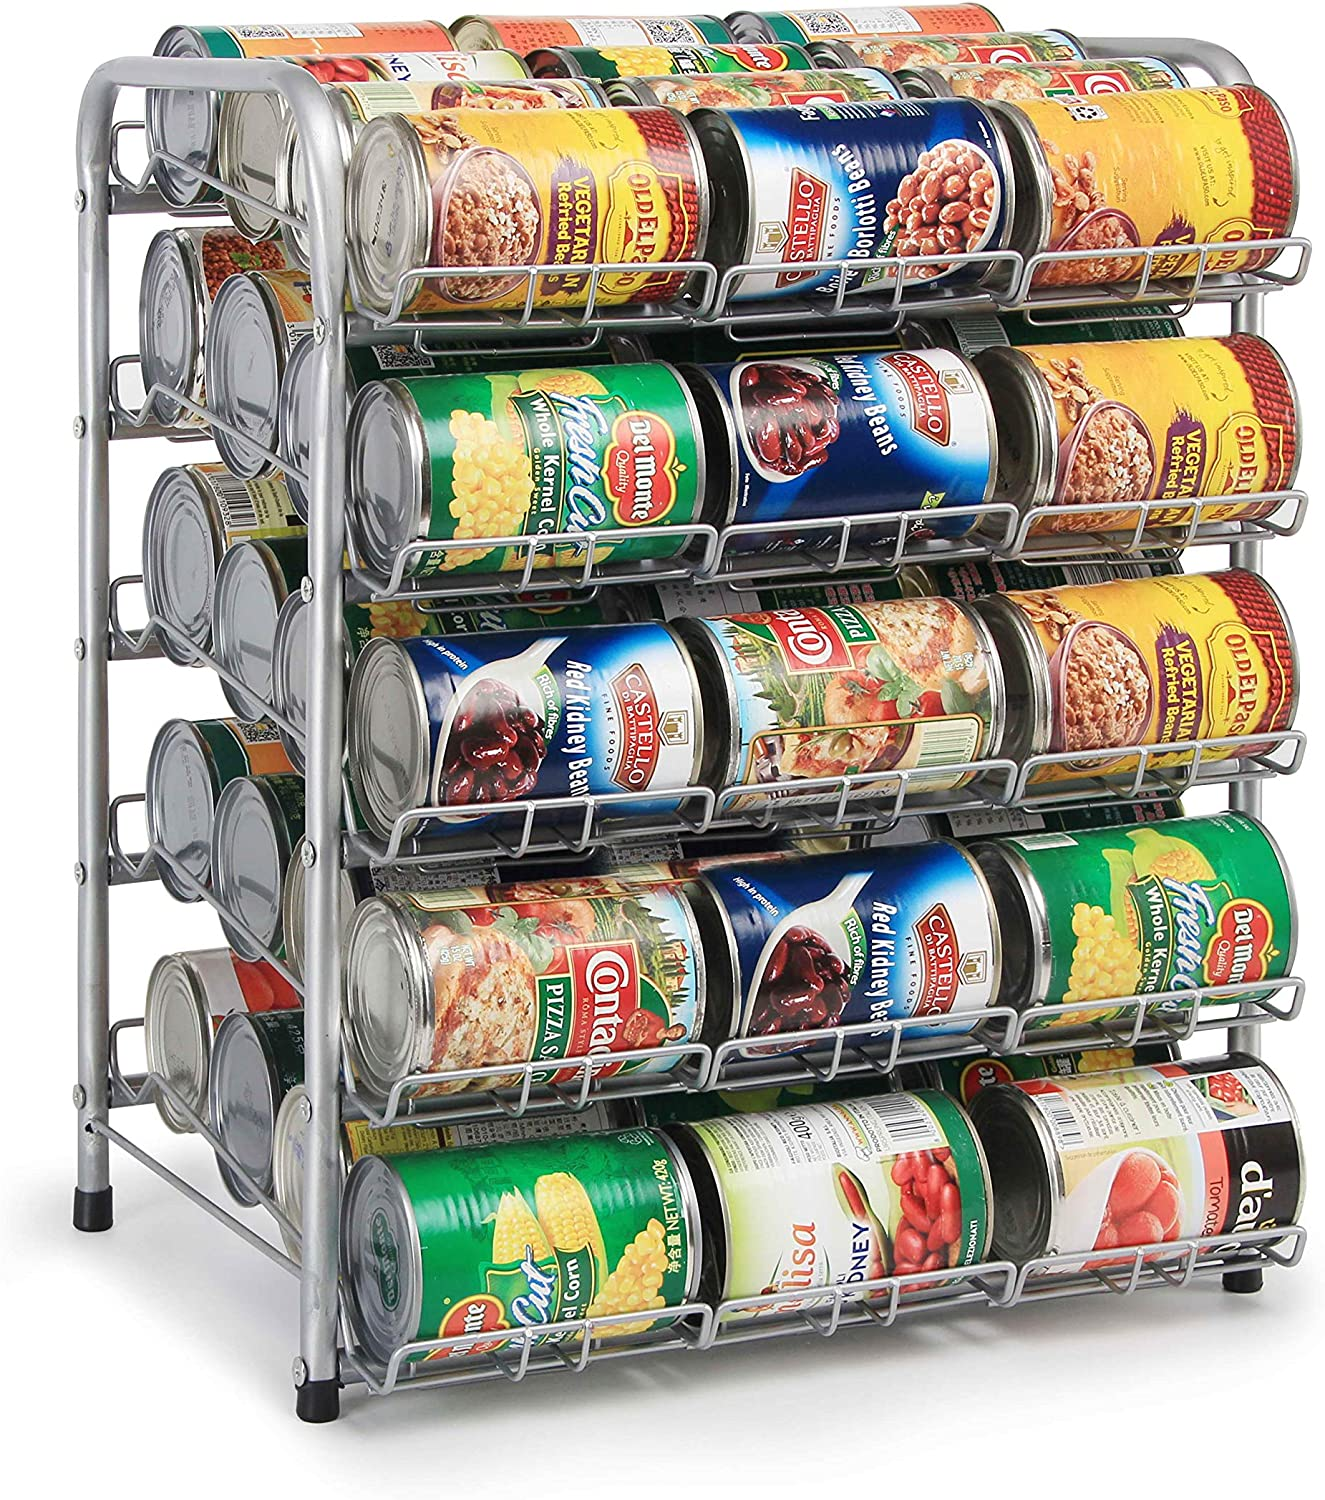 Amazon Com Rice Rat Can Organizer For Pantry Can Rack Can Storage Dispenser For Canned Foods 5 Tier Can Kitchen Dining